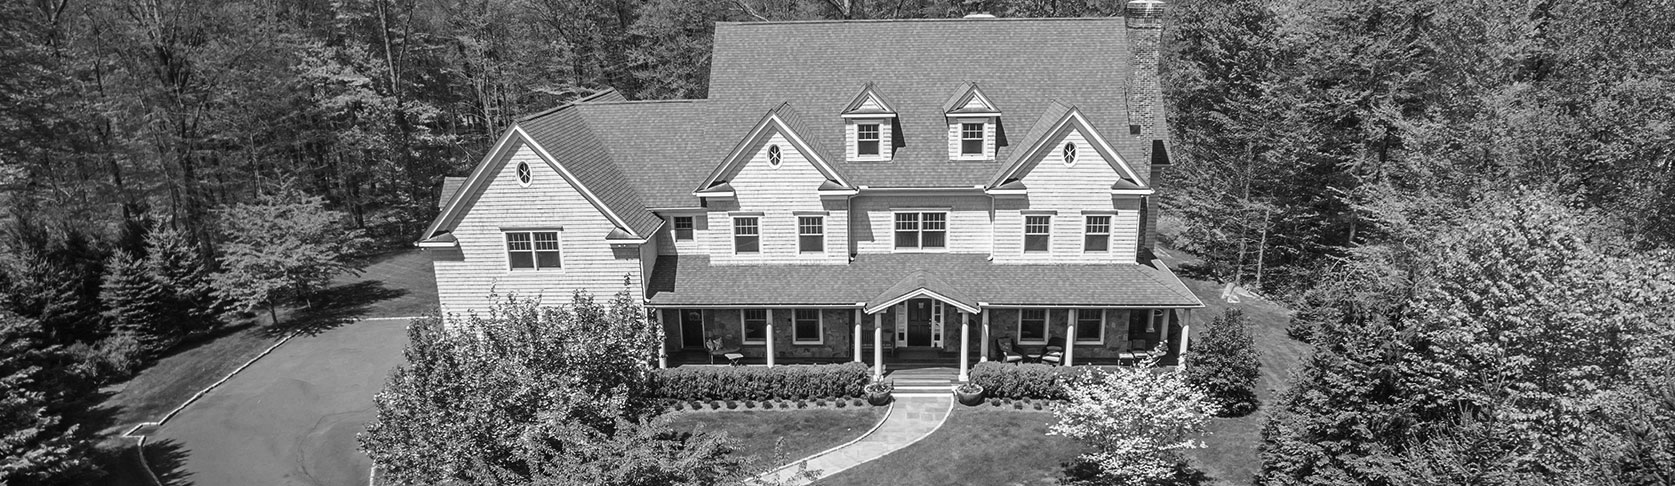 53 Coley Road, Wilton, CT